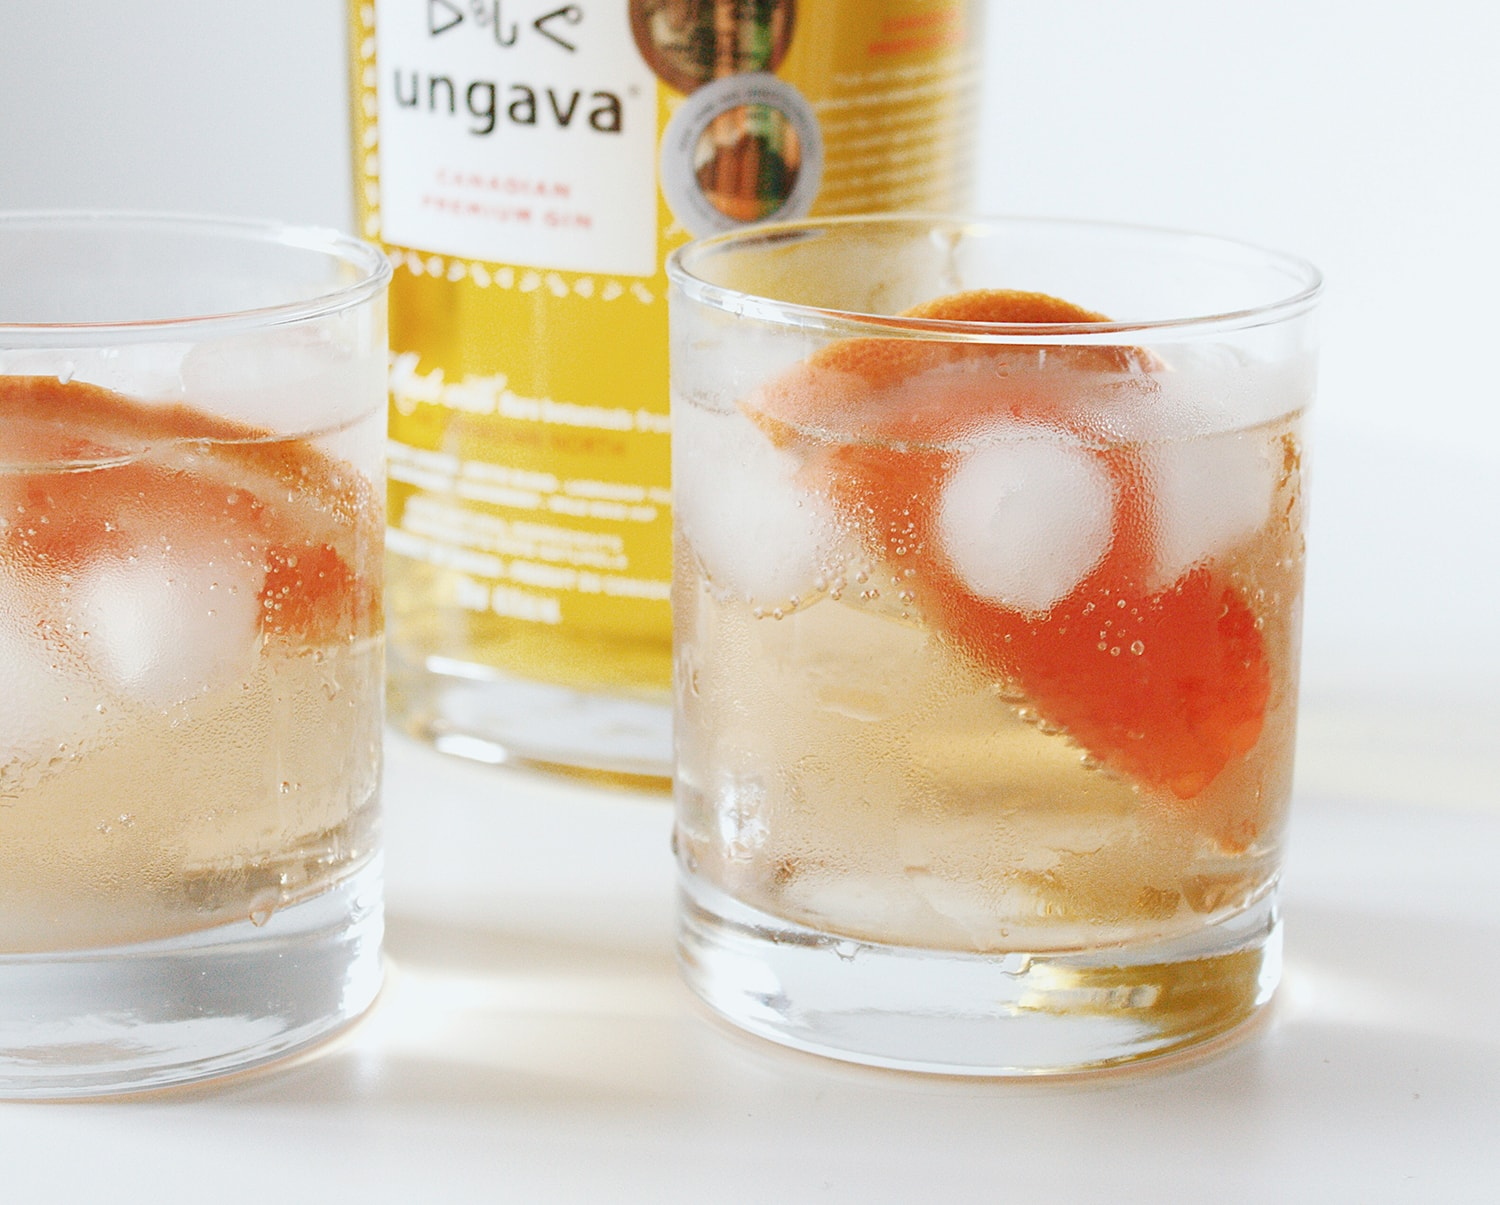 ungava gin cocktail recipe